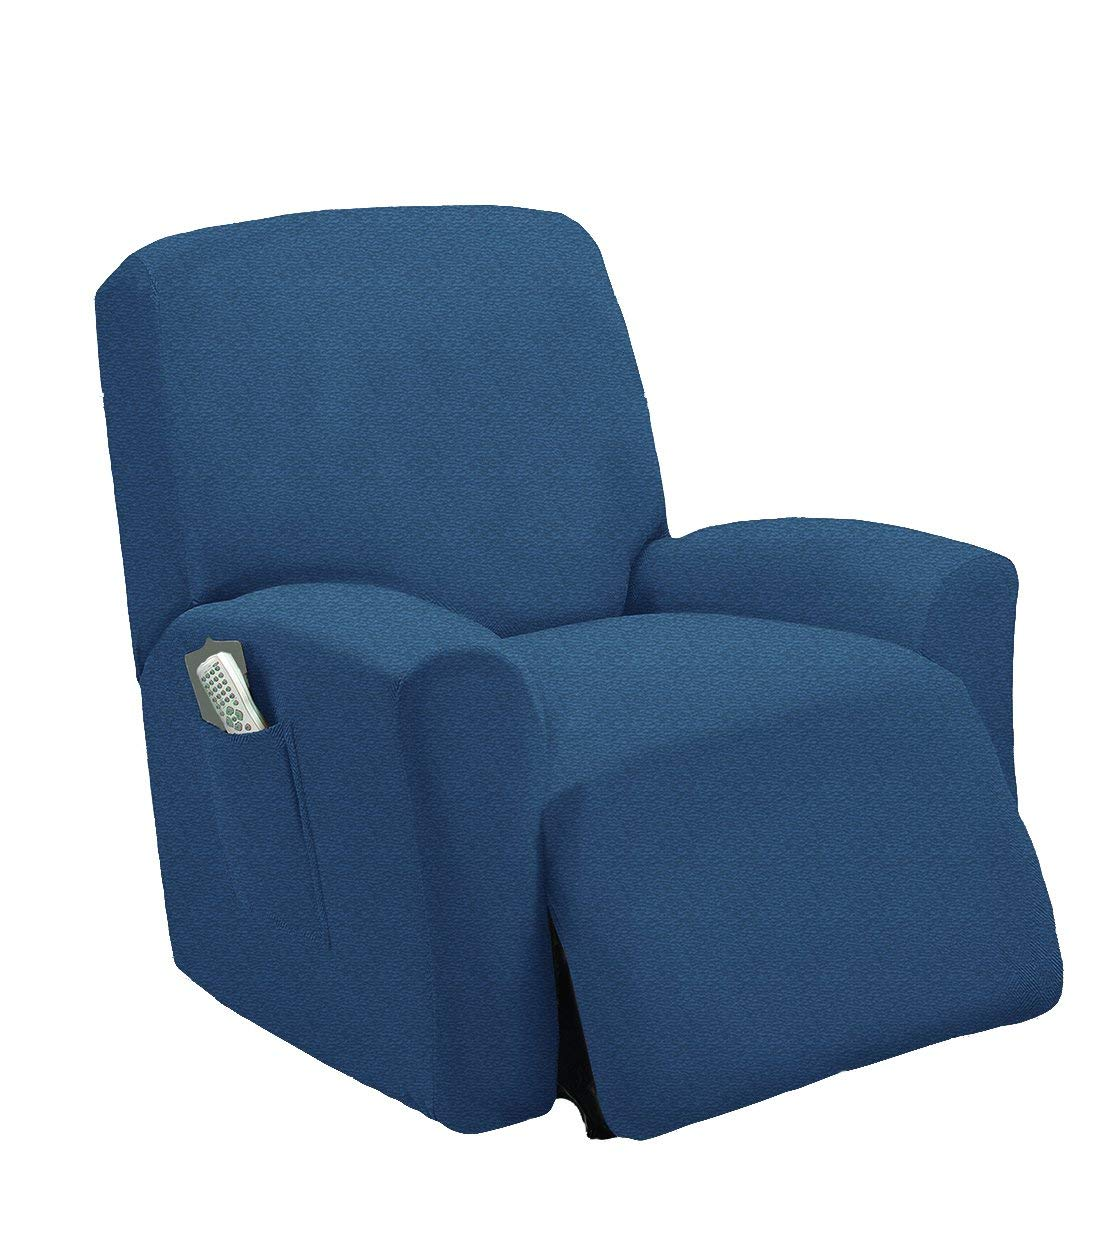 One Piece Recliner Chair Strech Furniture Slipcovers